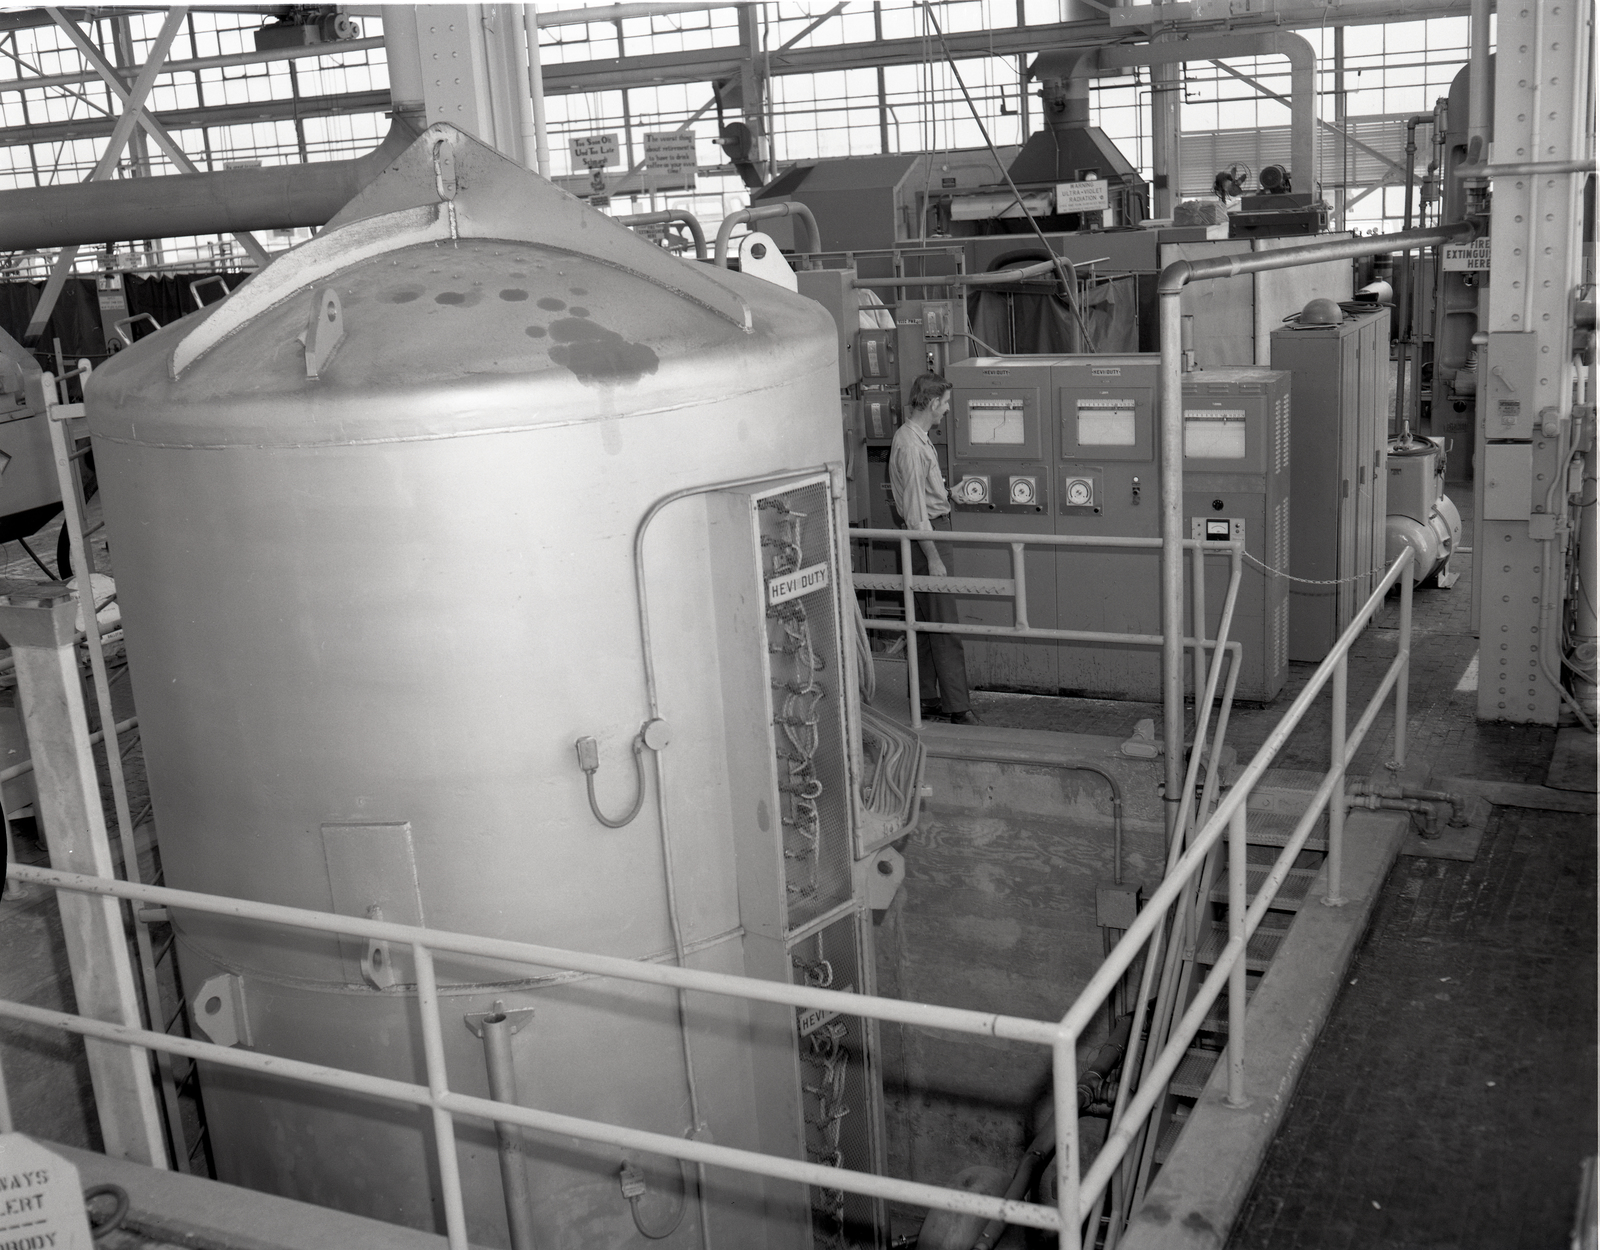 VARIOUS VACUUM FURNACE EQUIPMENT AT THE FABRICATION SHOP AND TECHNICAL SERVICES BUILDING TSB